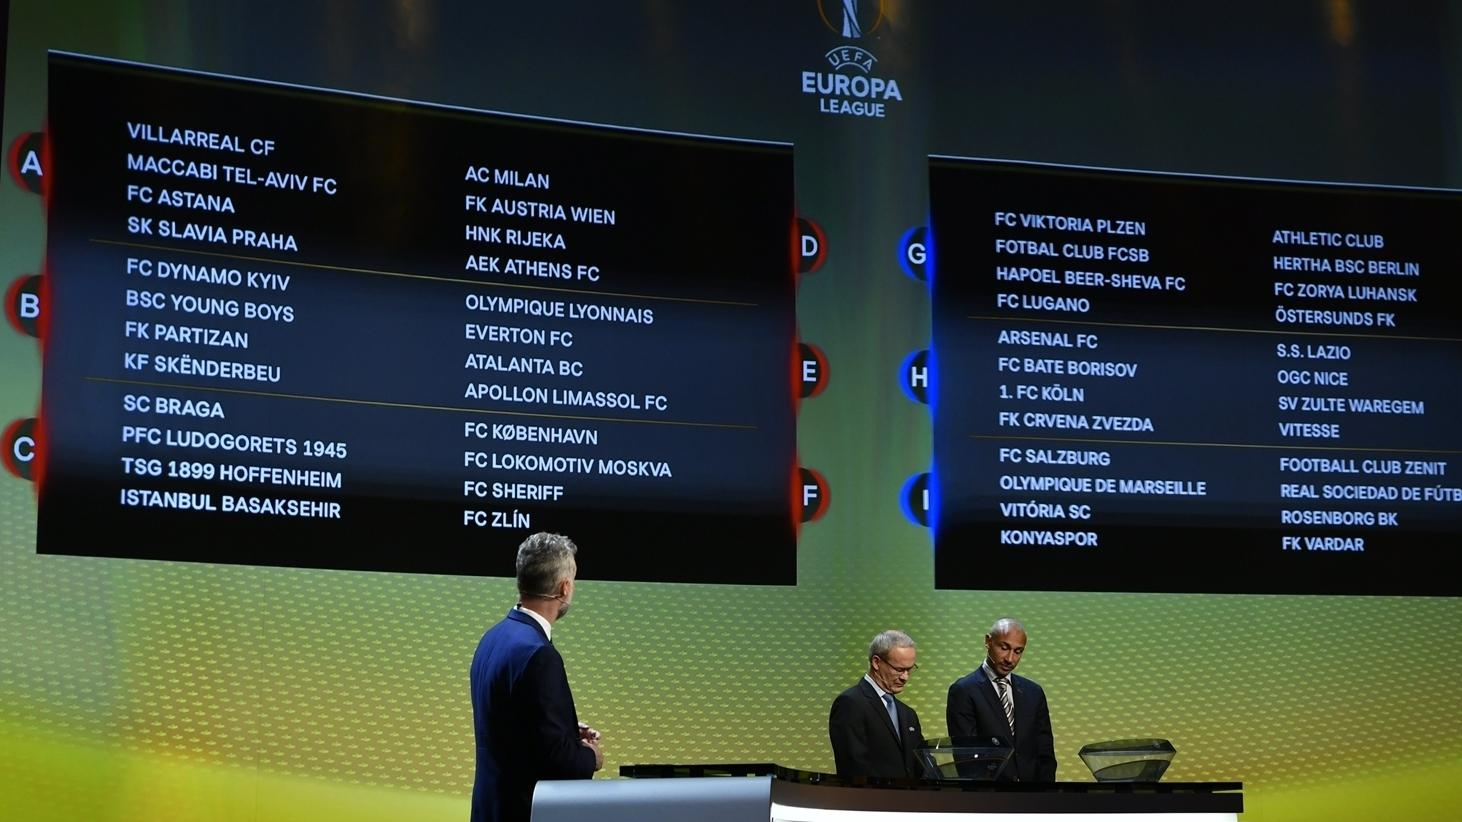 uefa europa league group stage draw uefa europa league uefa com uefa europa league group stage draw